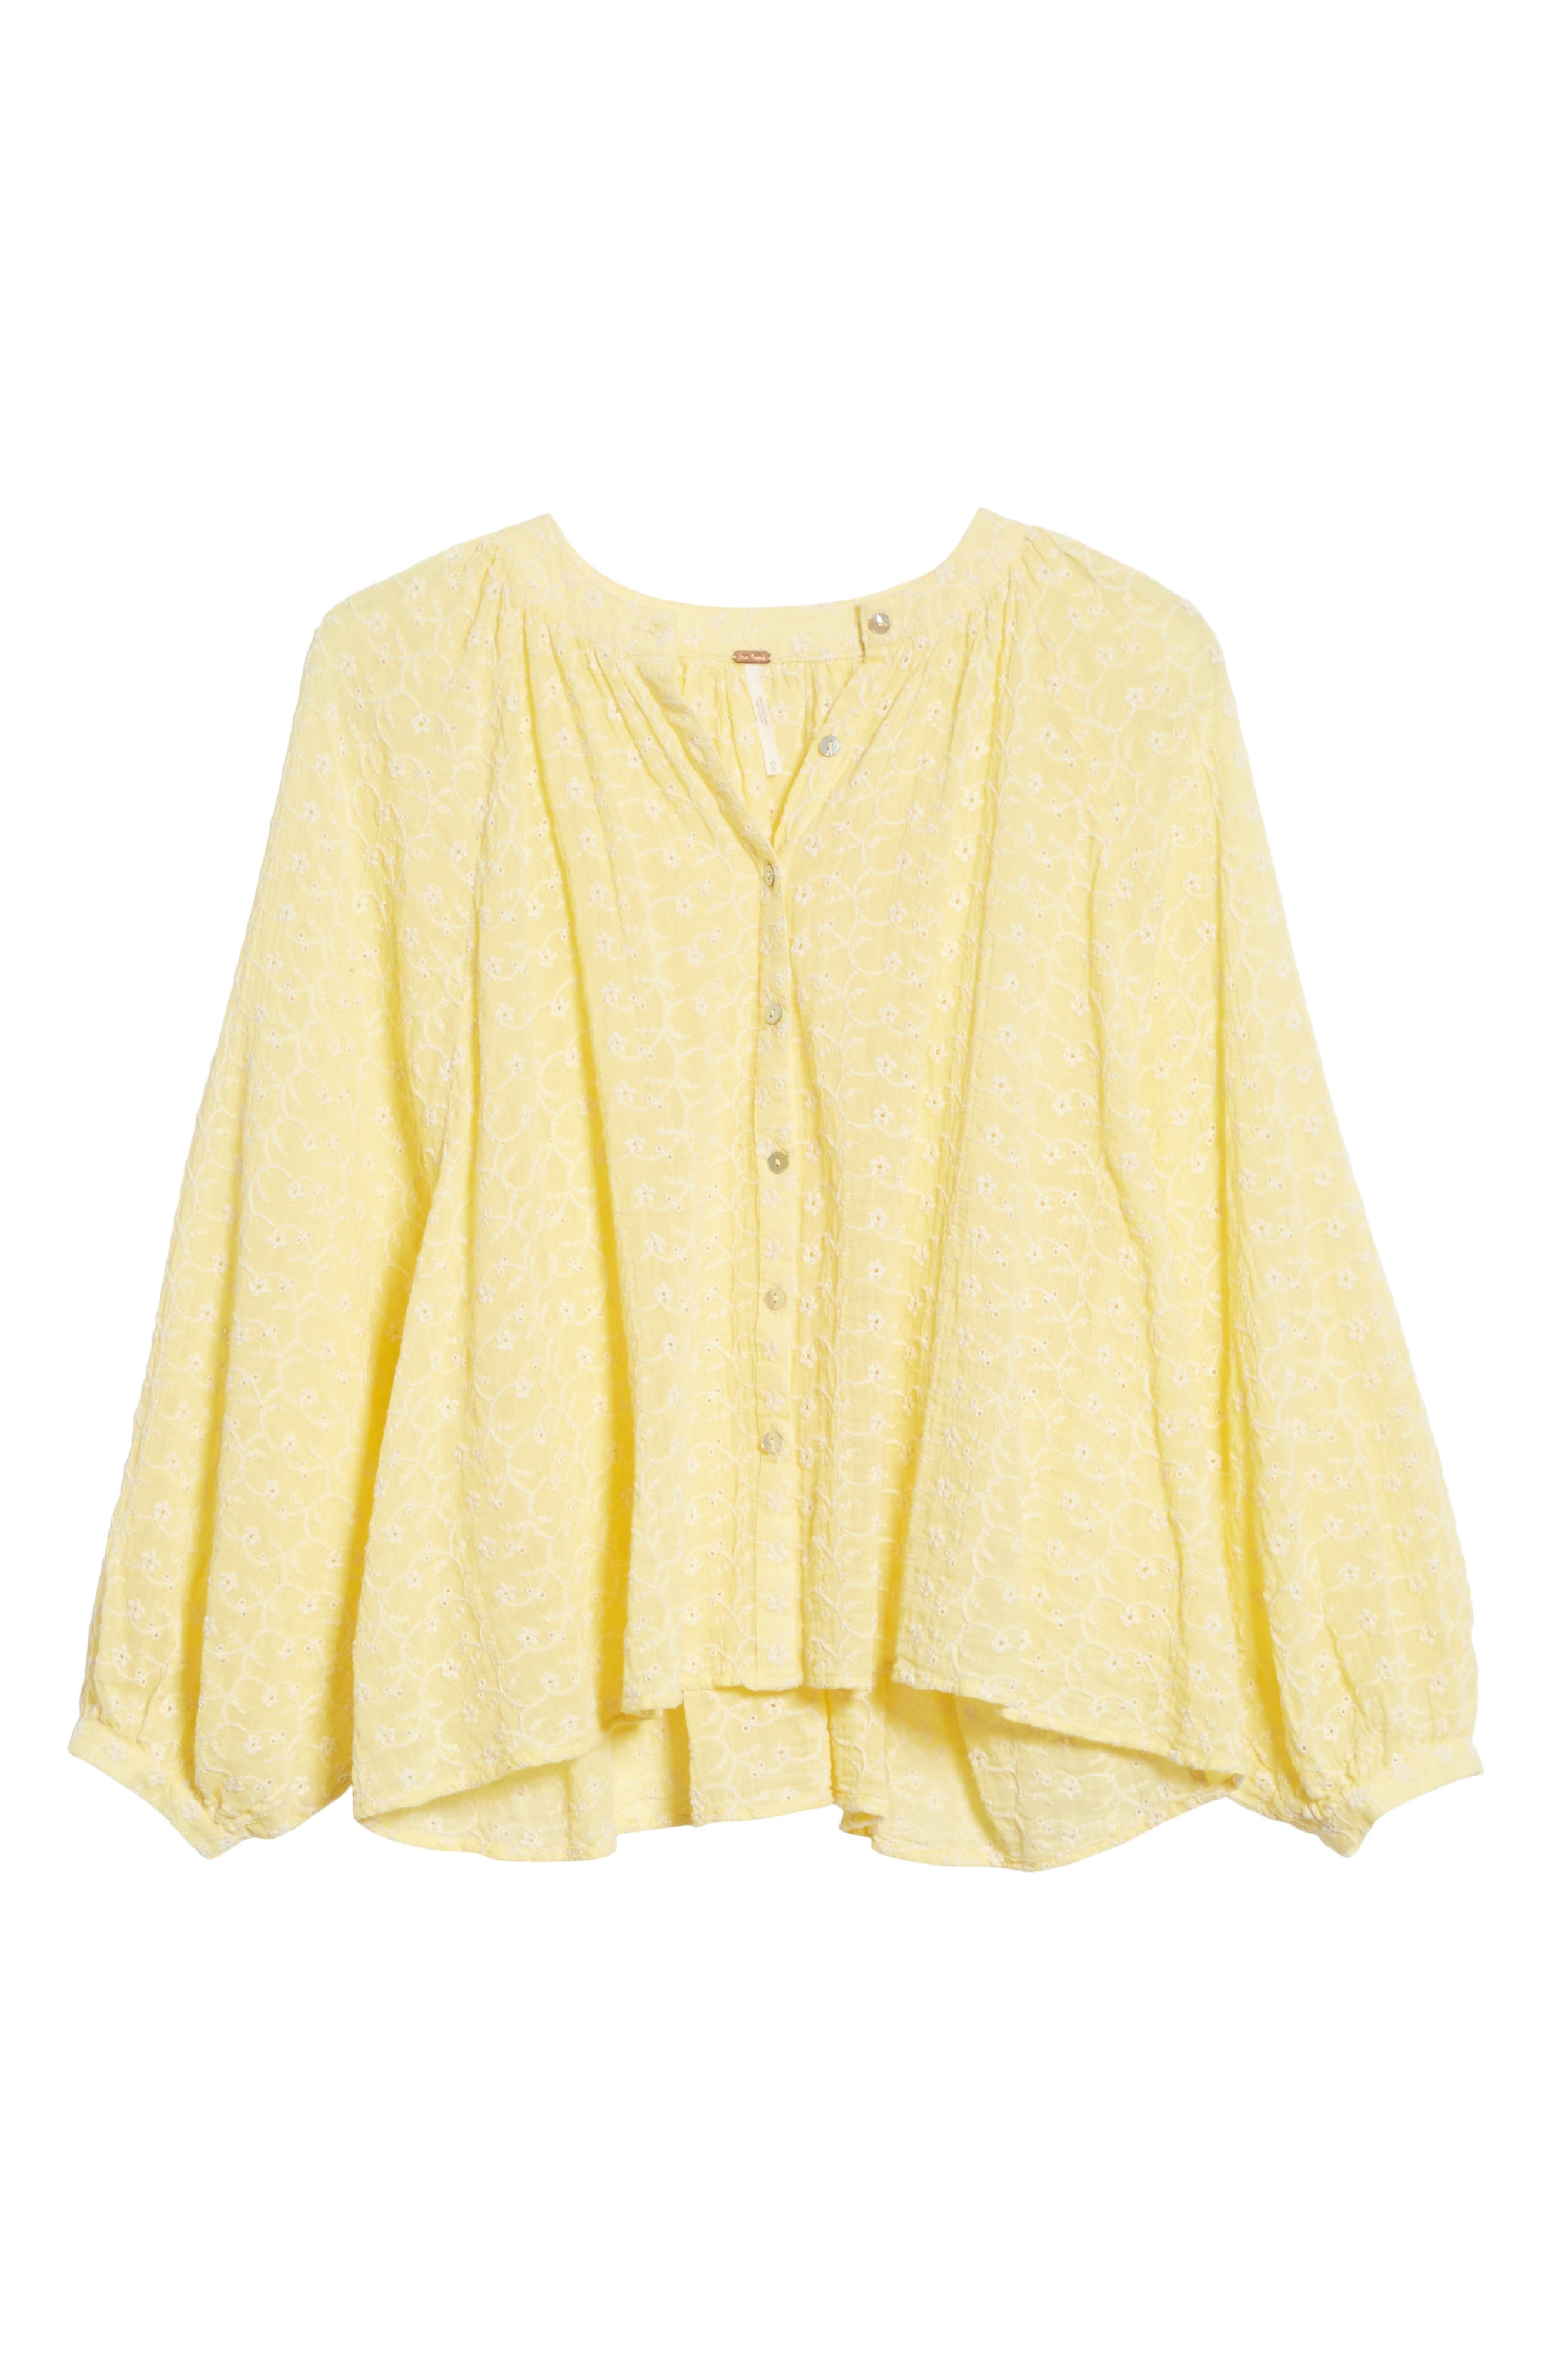 Down from the Clouds Peasant Top,                             Alternate thumbnail 7, color,                             Gold